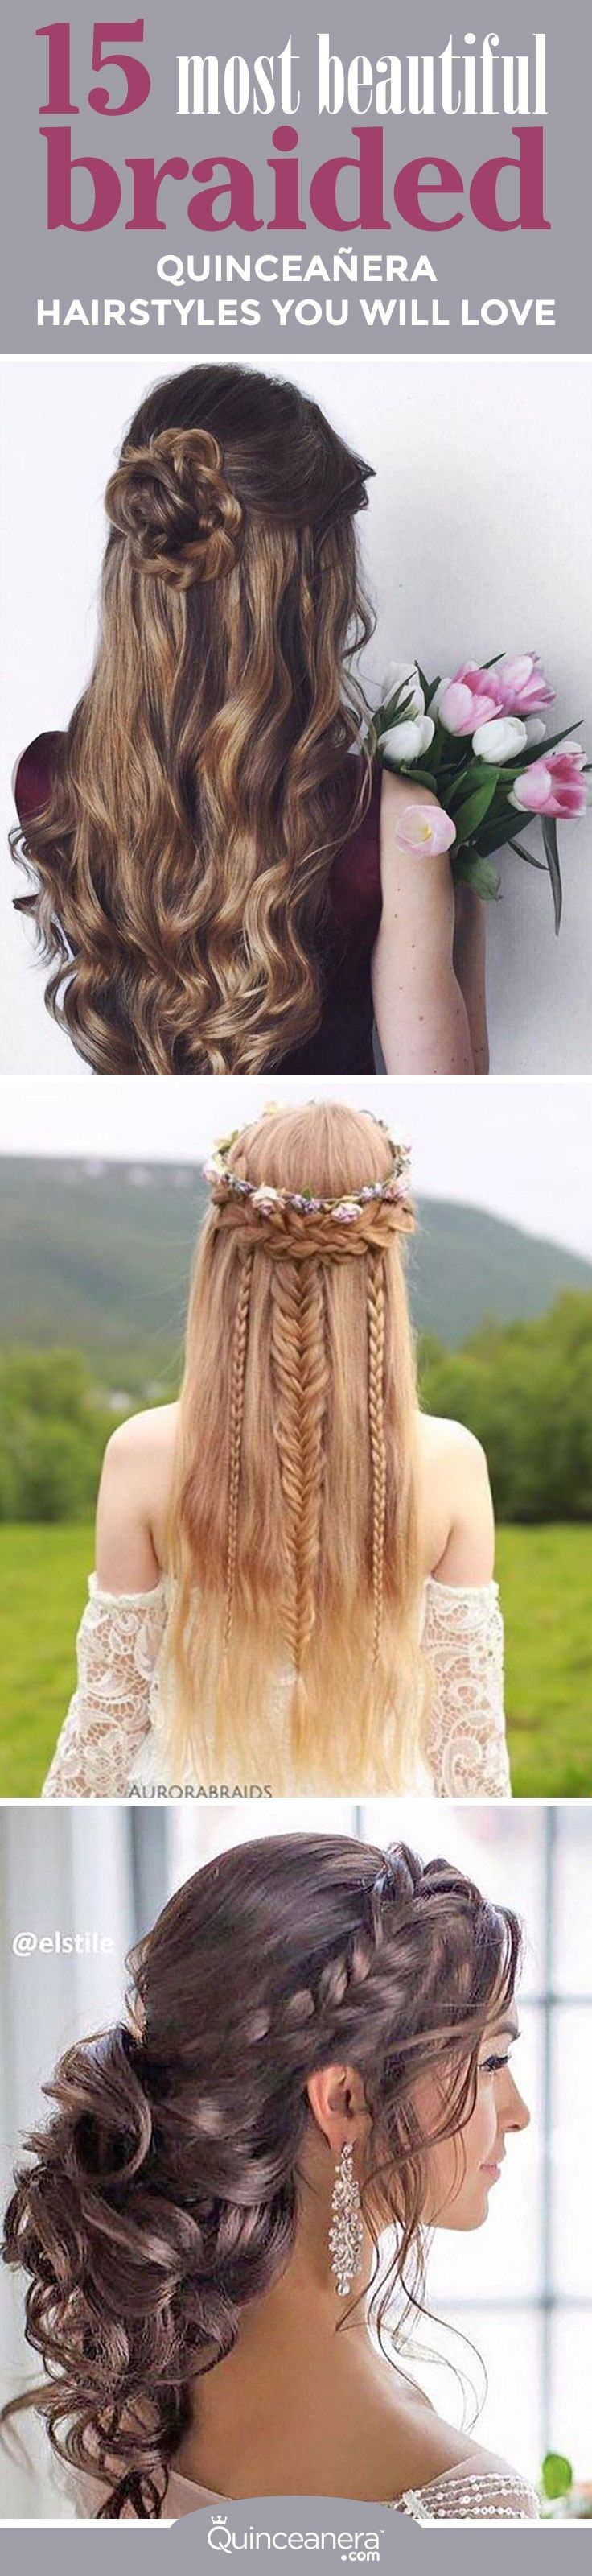 You're about to find the hairstyle you've always dreamed of. Get inspired by the most gorgeous braided quinceanera hairstyles that will leave your guests breathless!